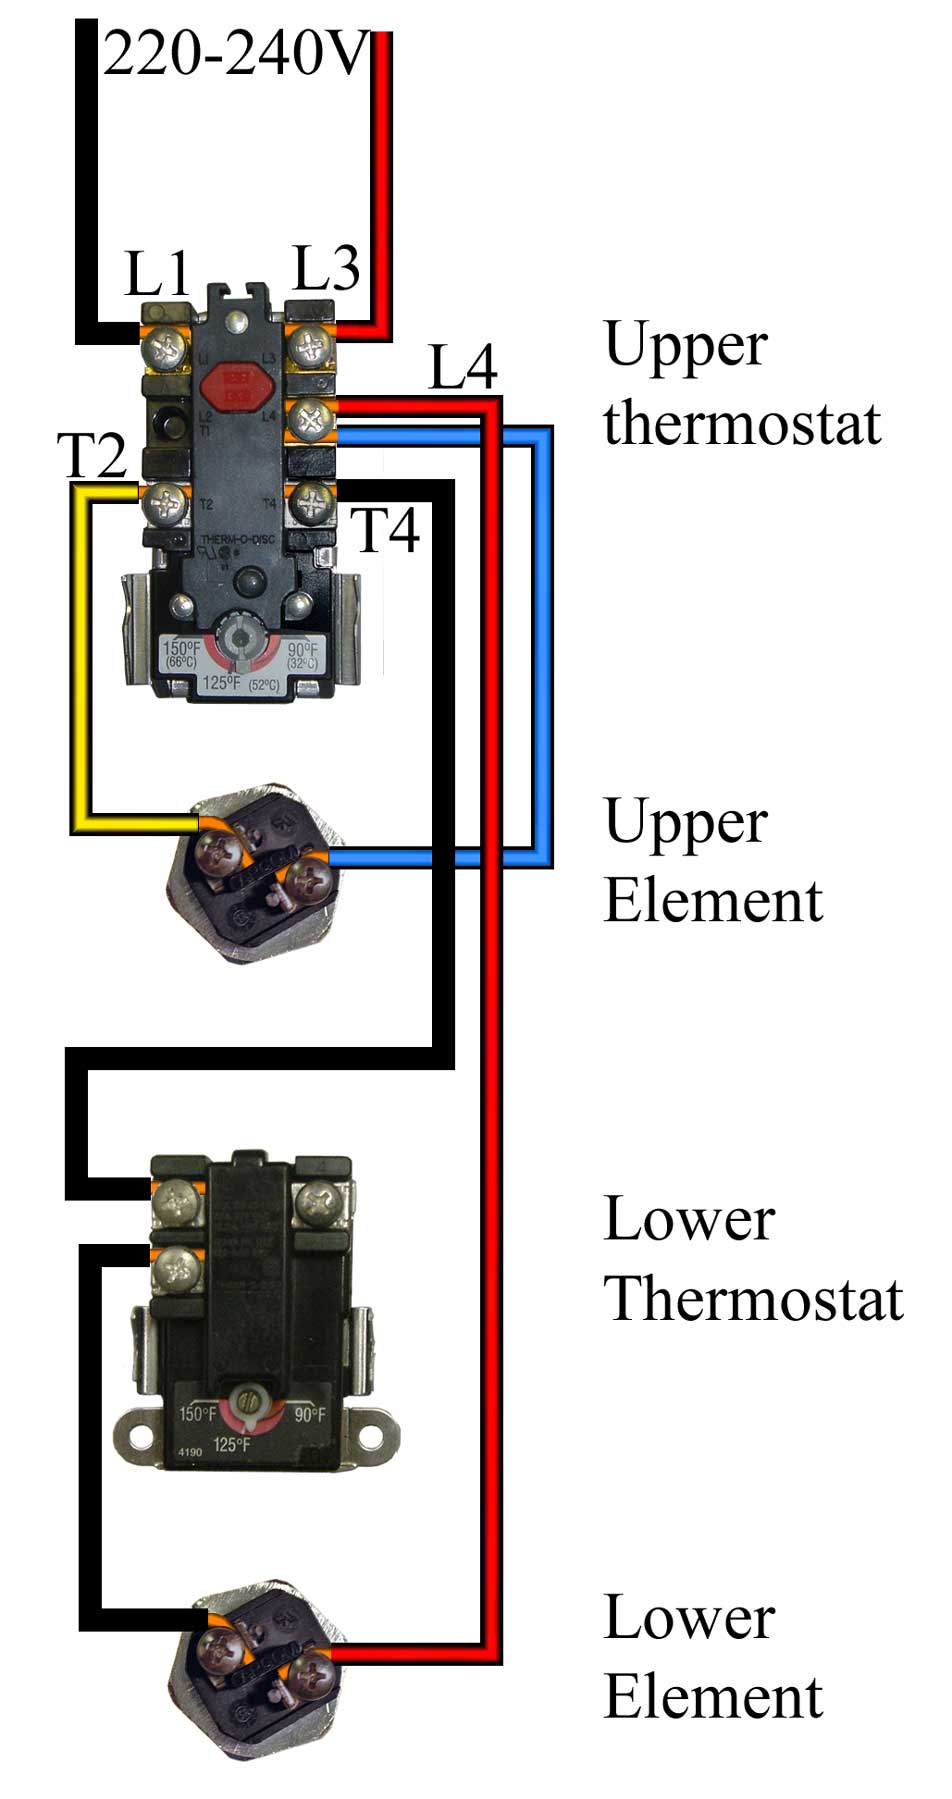 Water heater wiring w num10 how to wire water heater thermostat electric water heater wiring diagram at sewacar.co